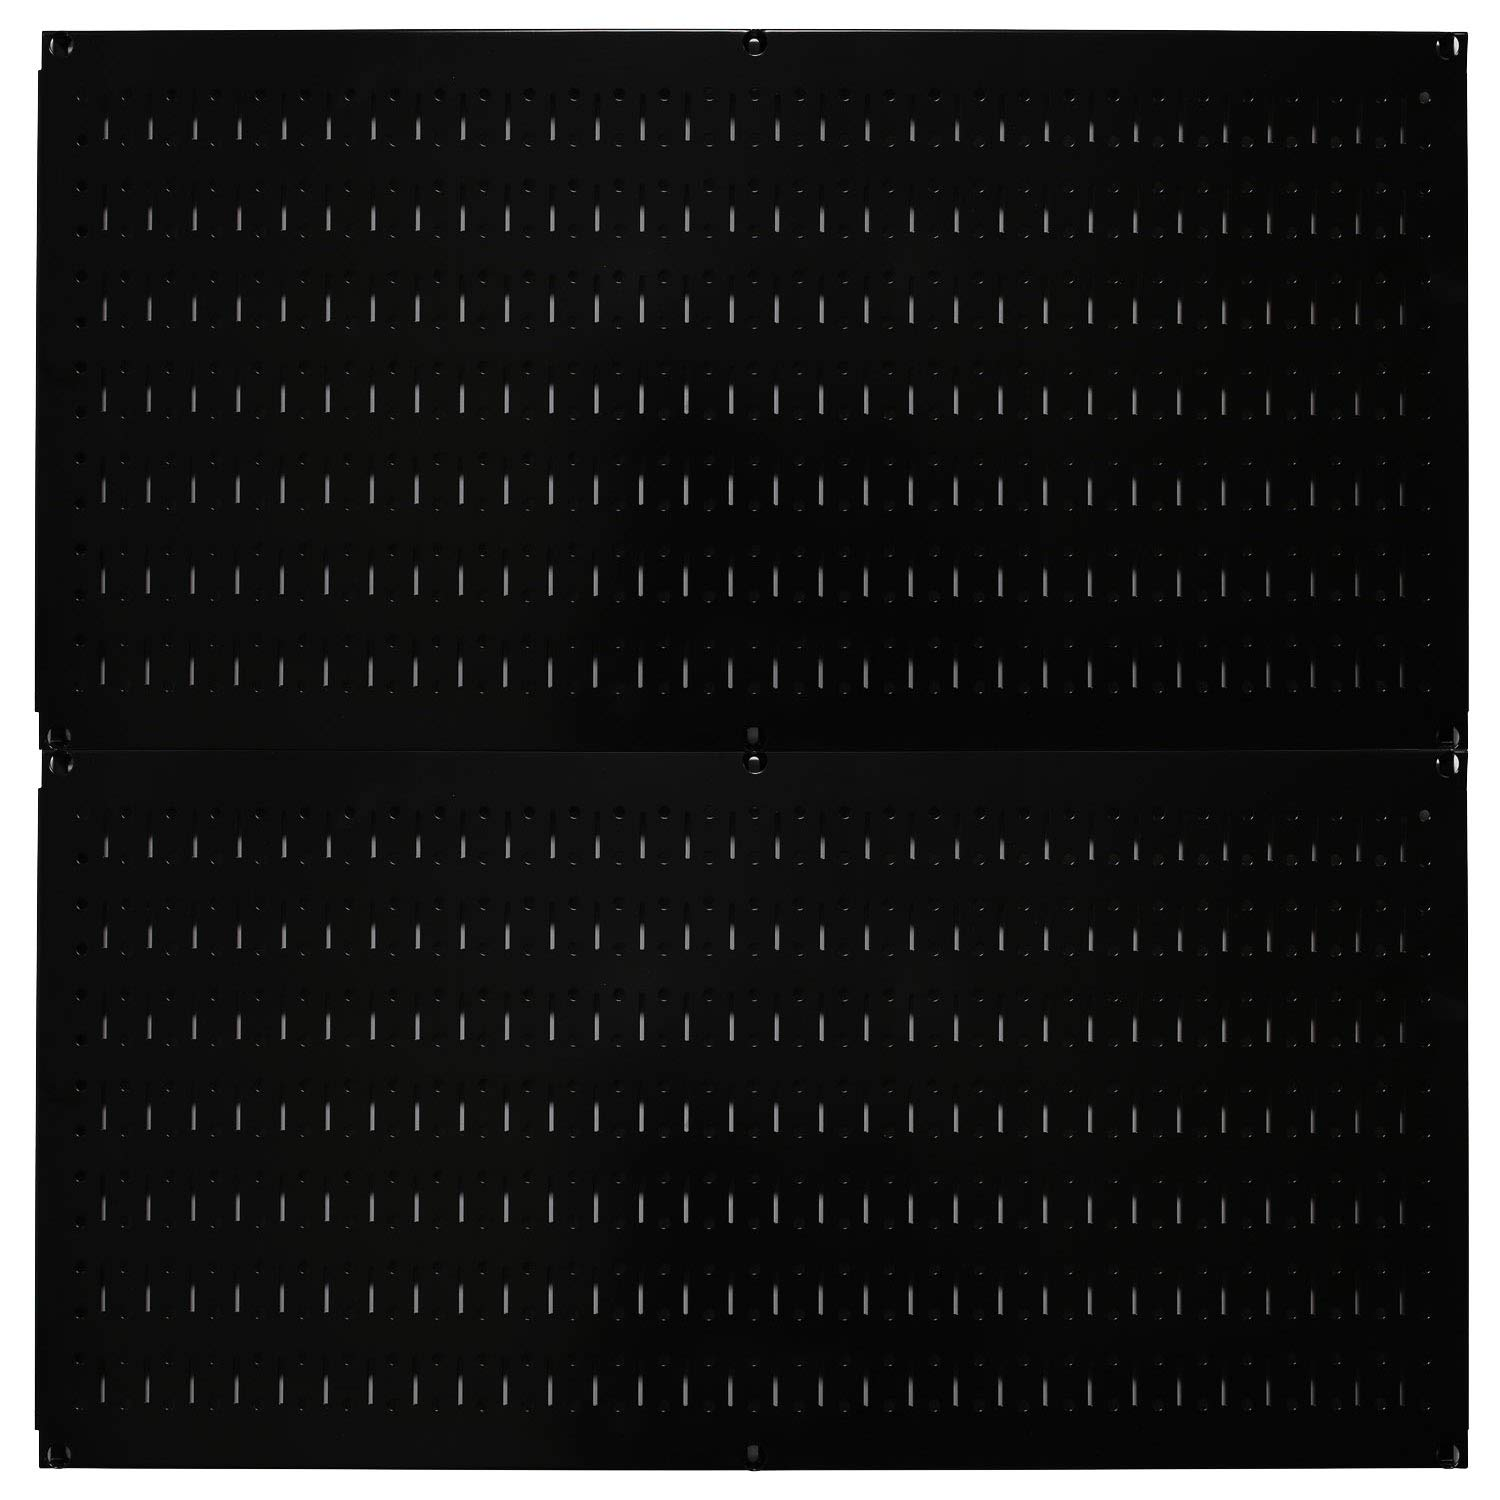 Wall Control Pegboard Rack Horizontal Metal Pegboard Garage Tool Storage Pack - Two 32-Inch Wide x 16-Inch Tall Easy to Install Peg Boards (Black) by Wall Control